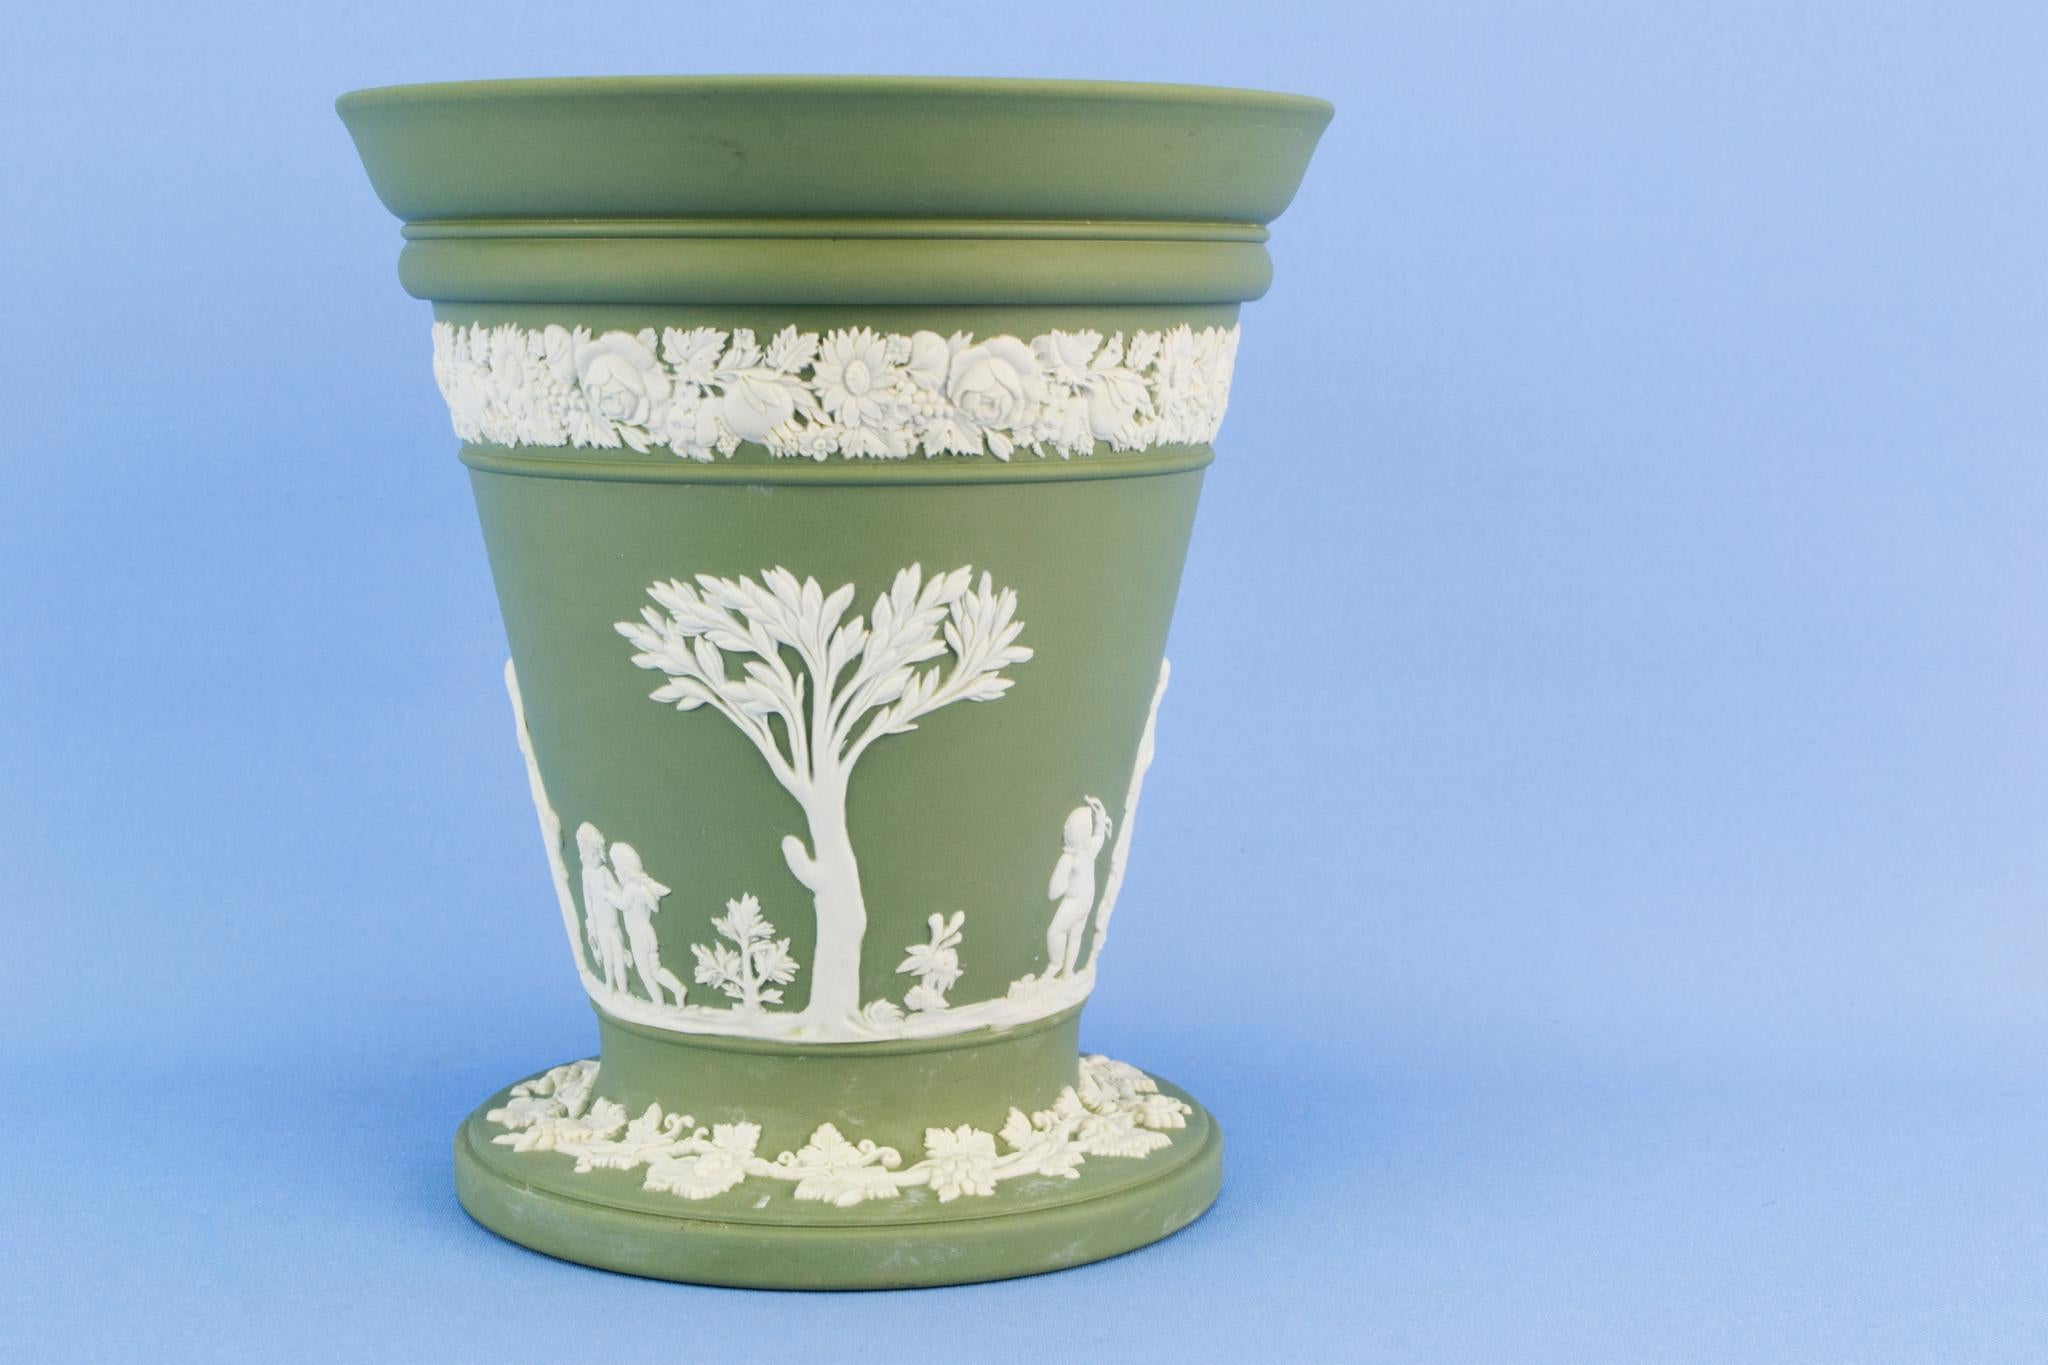 Wedgwood Green jasperware vase, English 1950s